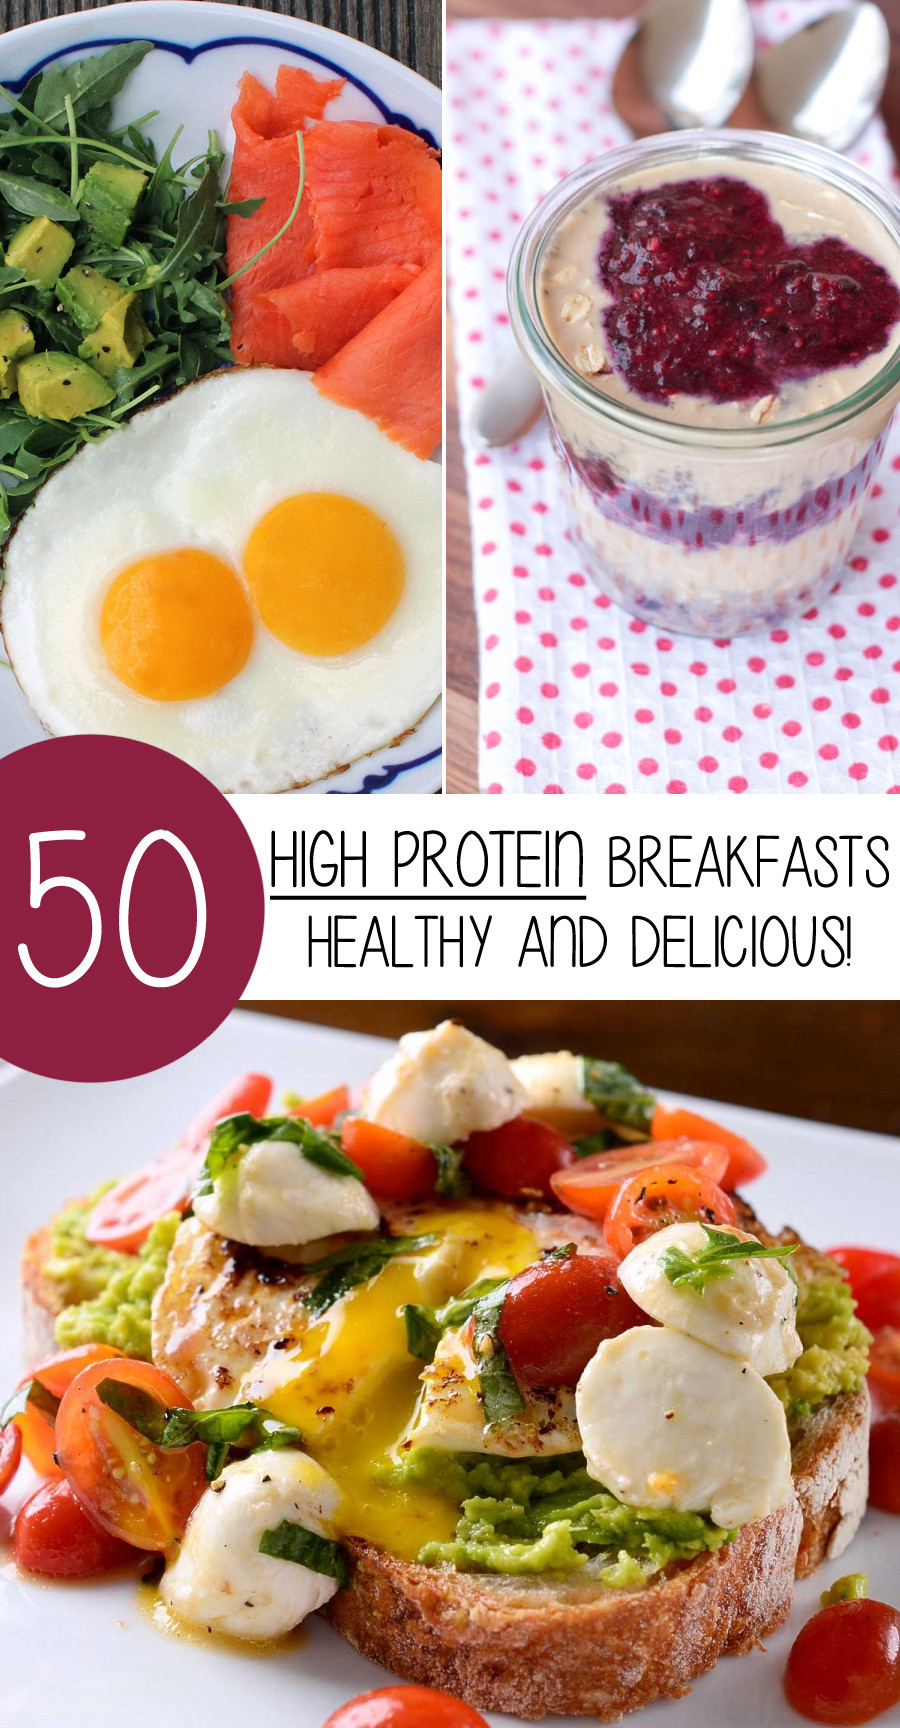 Healthy Breakfast Protein  50 High Protein Breakfasts That Are Healthy And Delicious